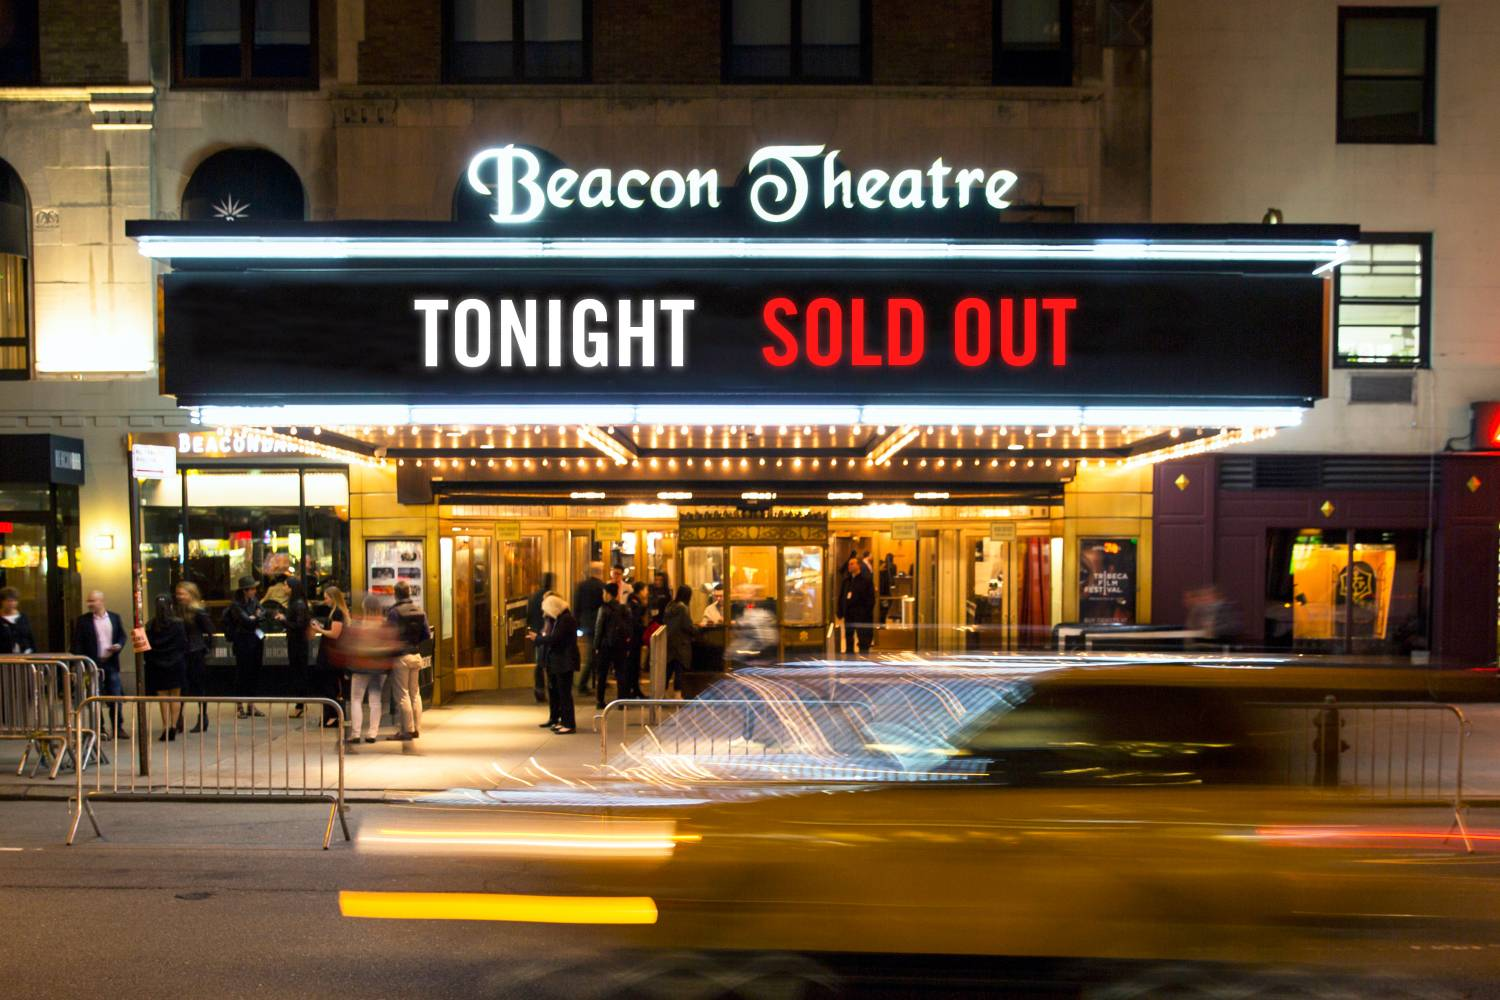 Beacon Theatre, marquee